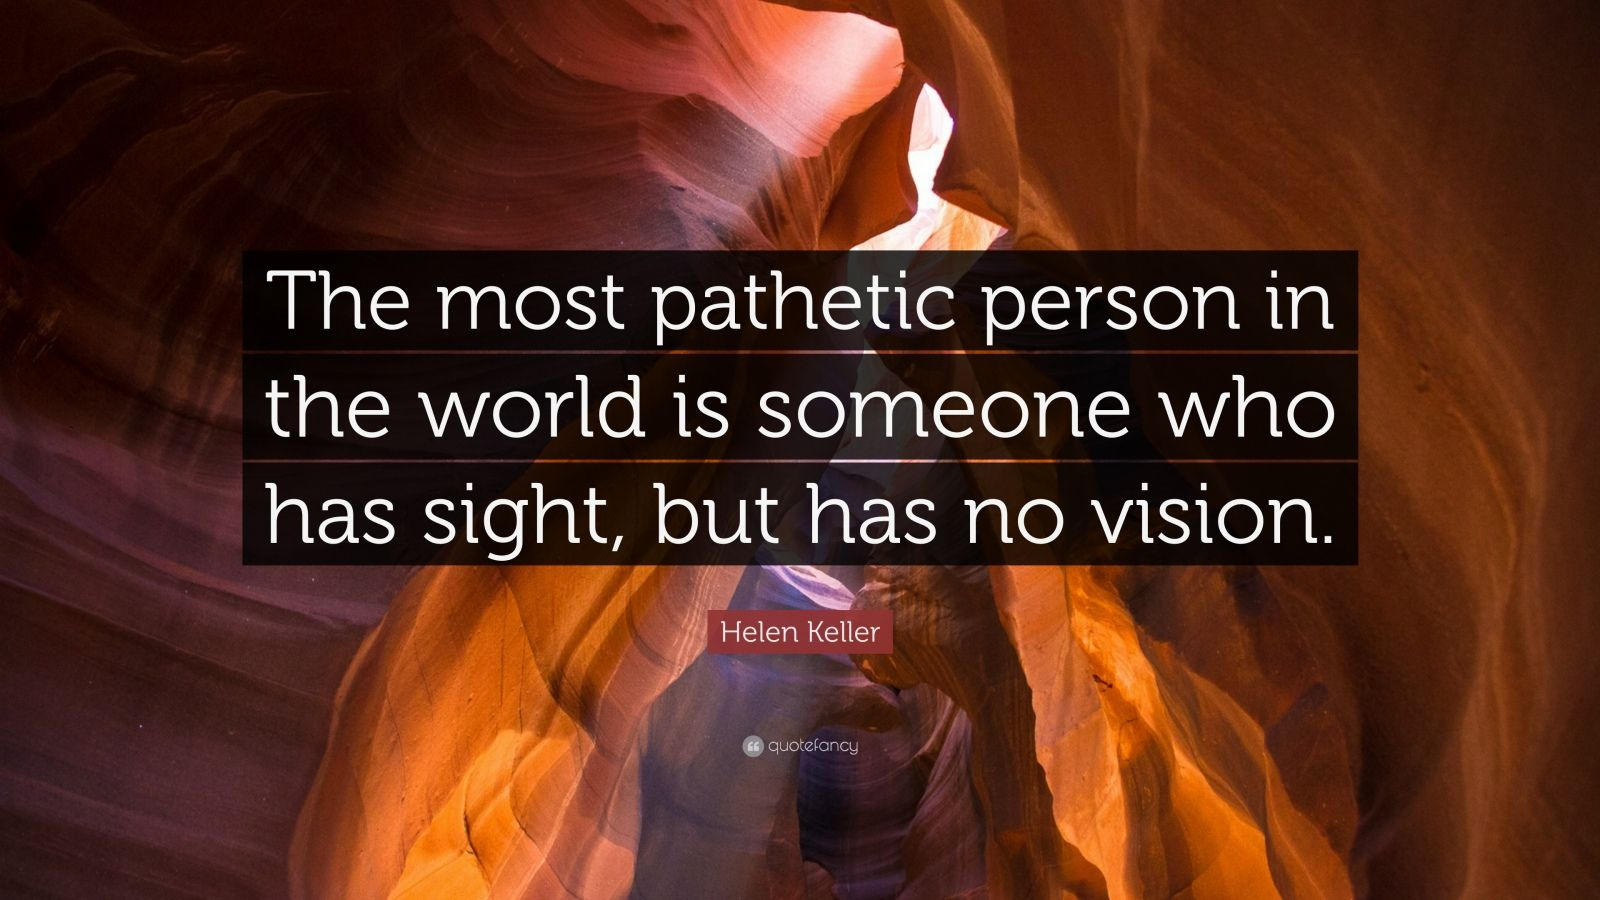 Helen Keller Quote: The most pathetic person in the world